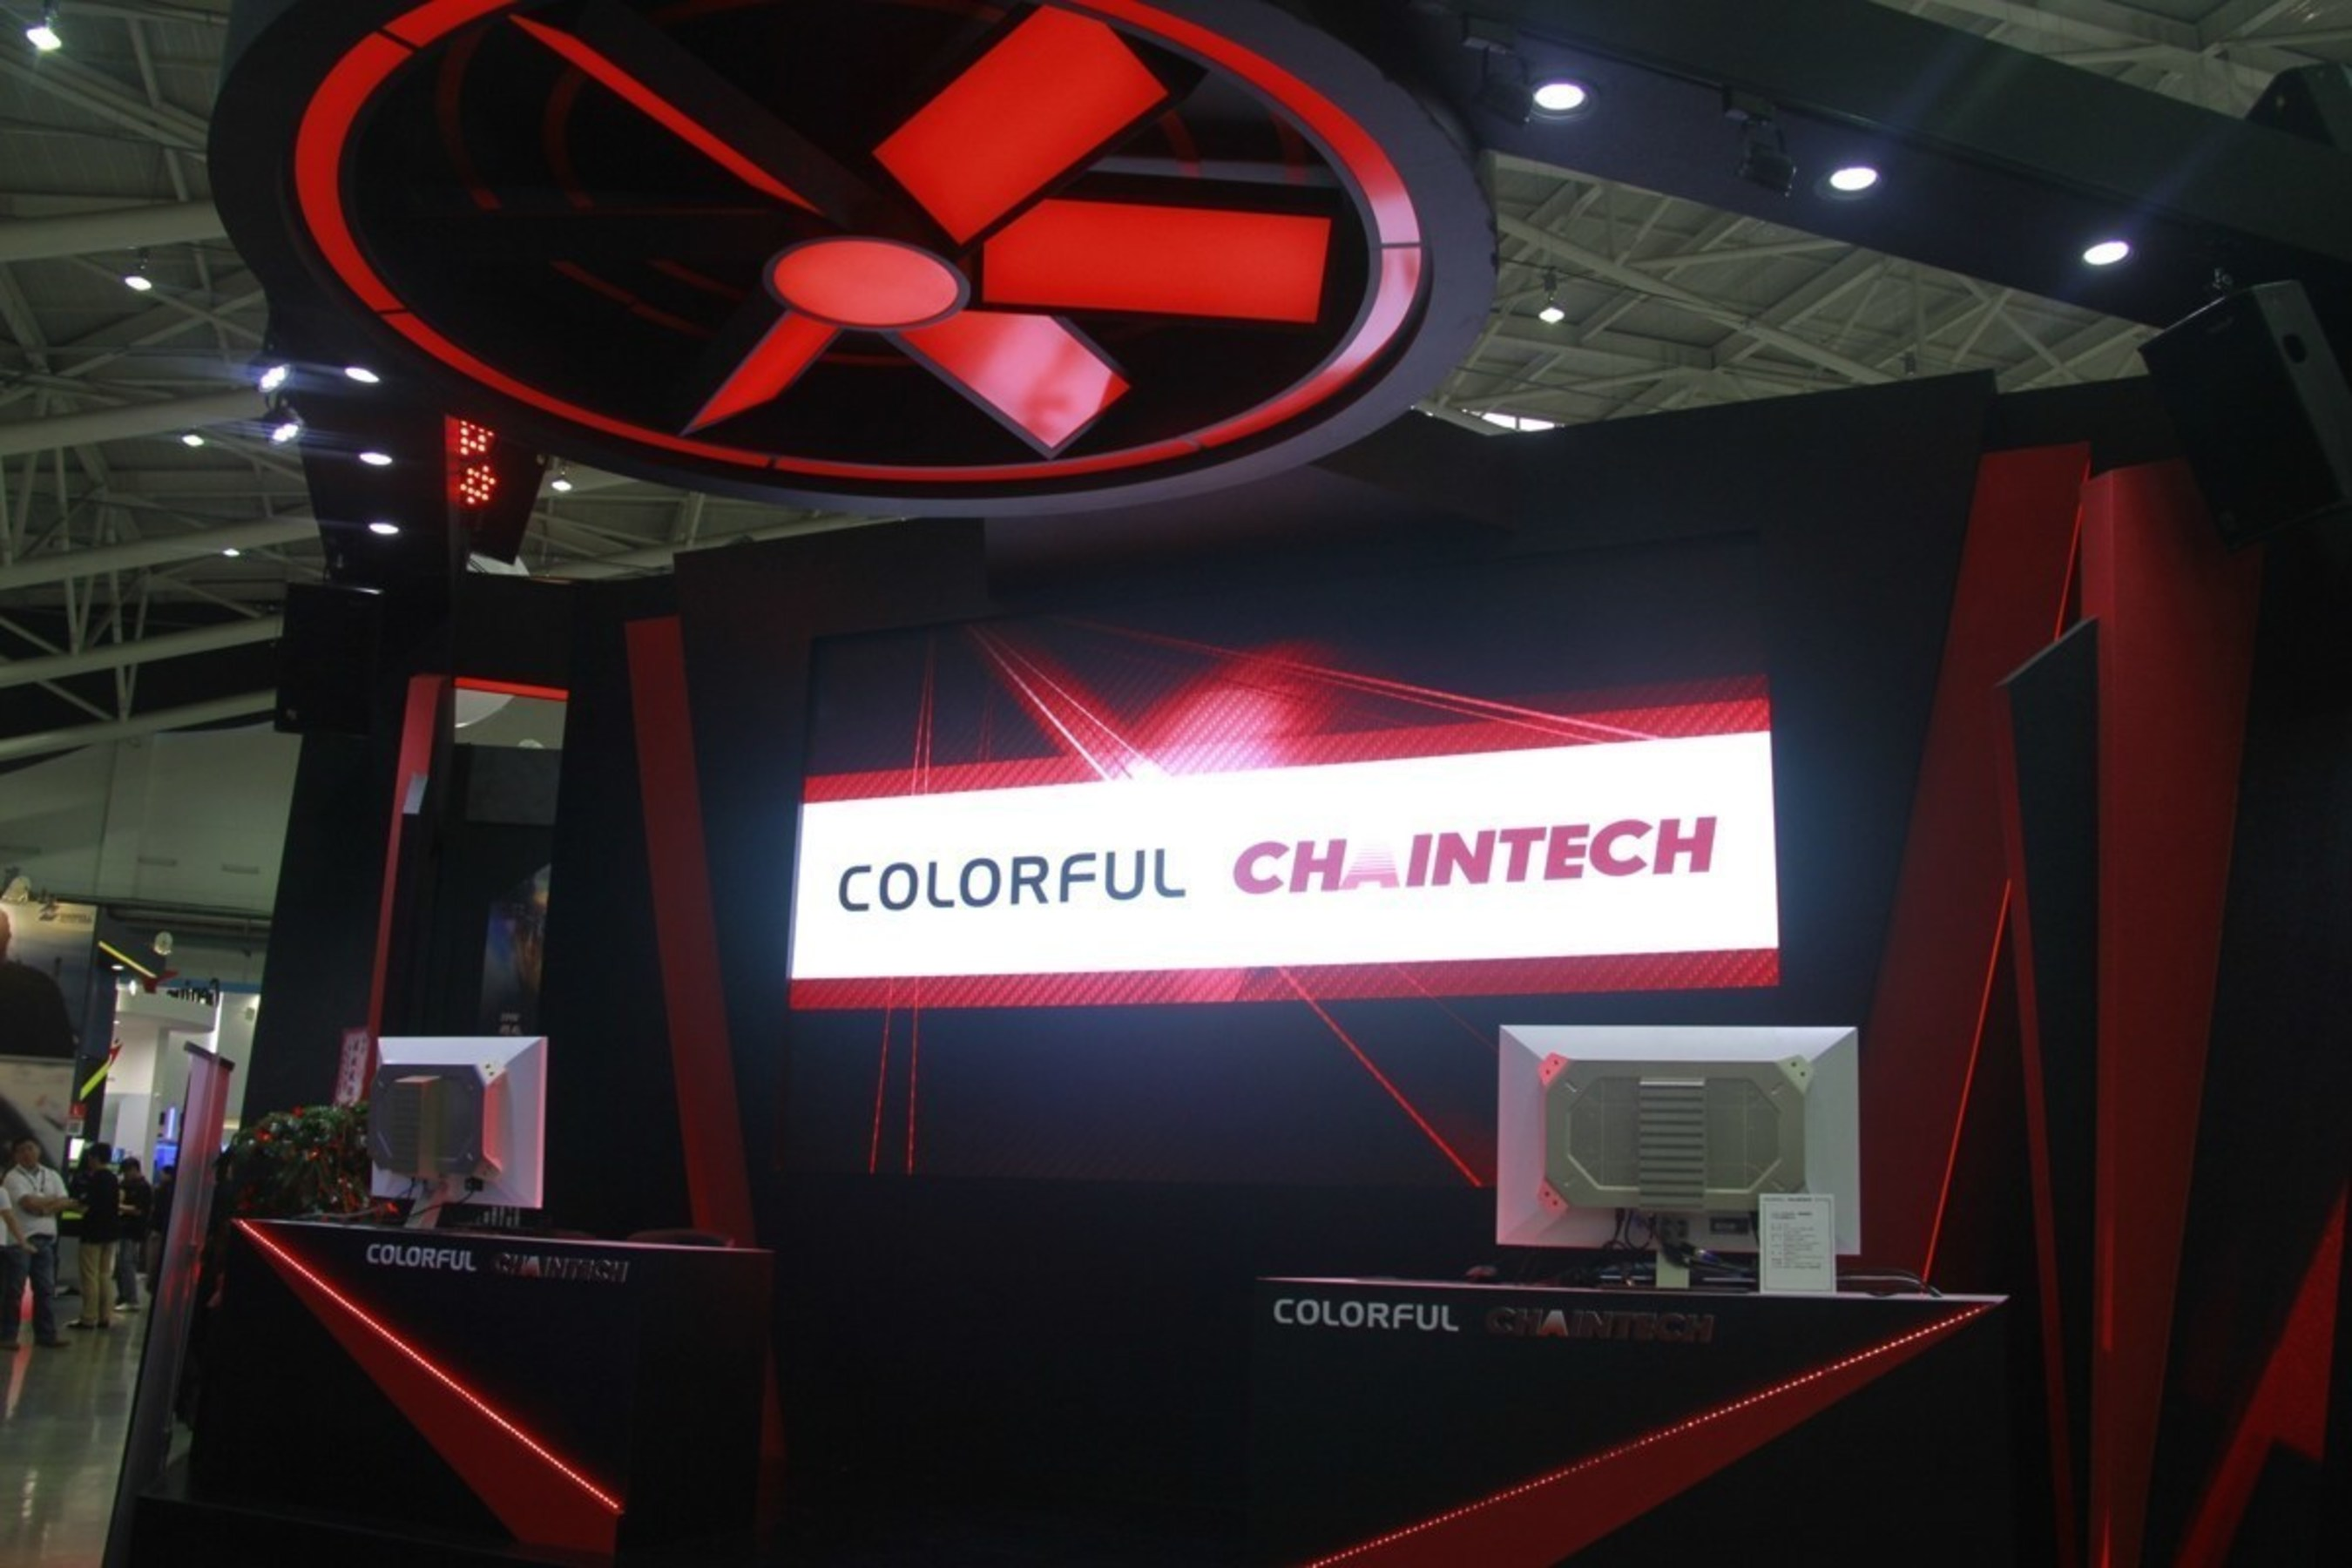 Colorful Exhibits New Product Lines at COMPUTEX Taipei